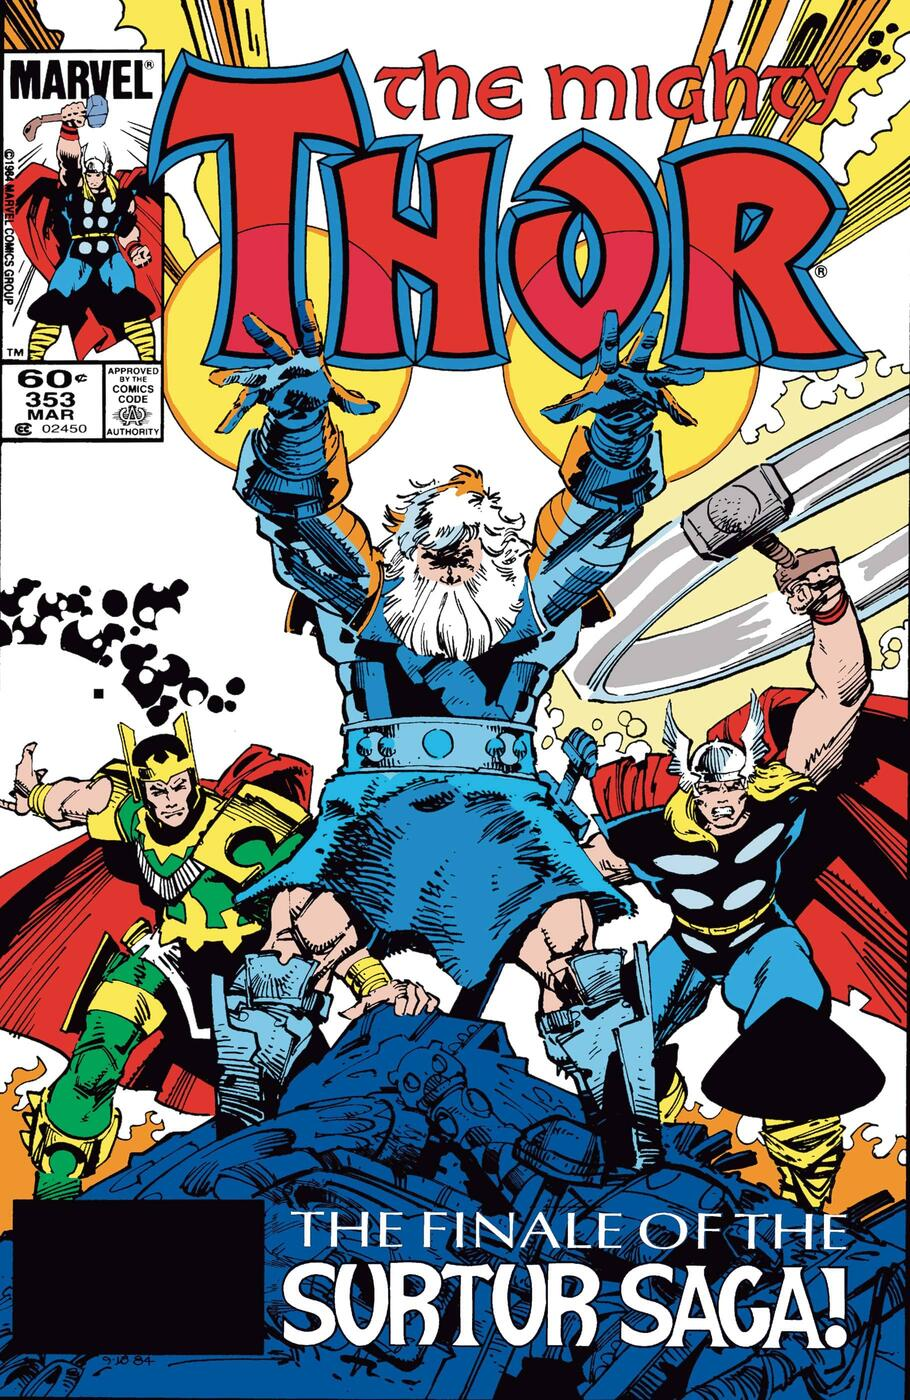 Thor (1966) #353 cover by Walter Simonson